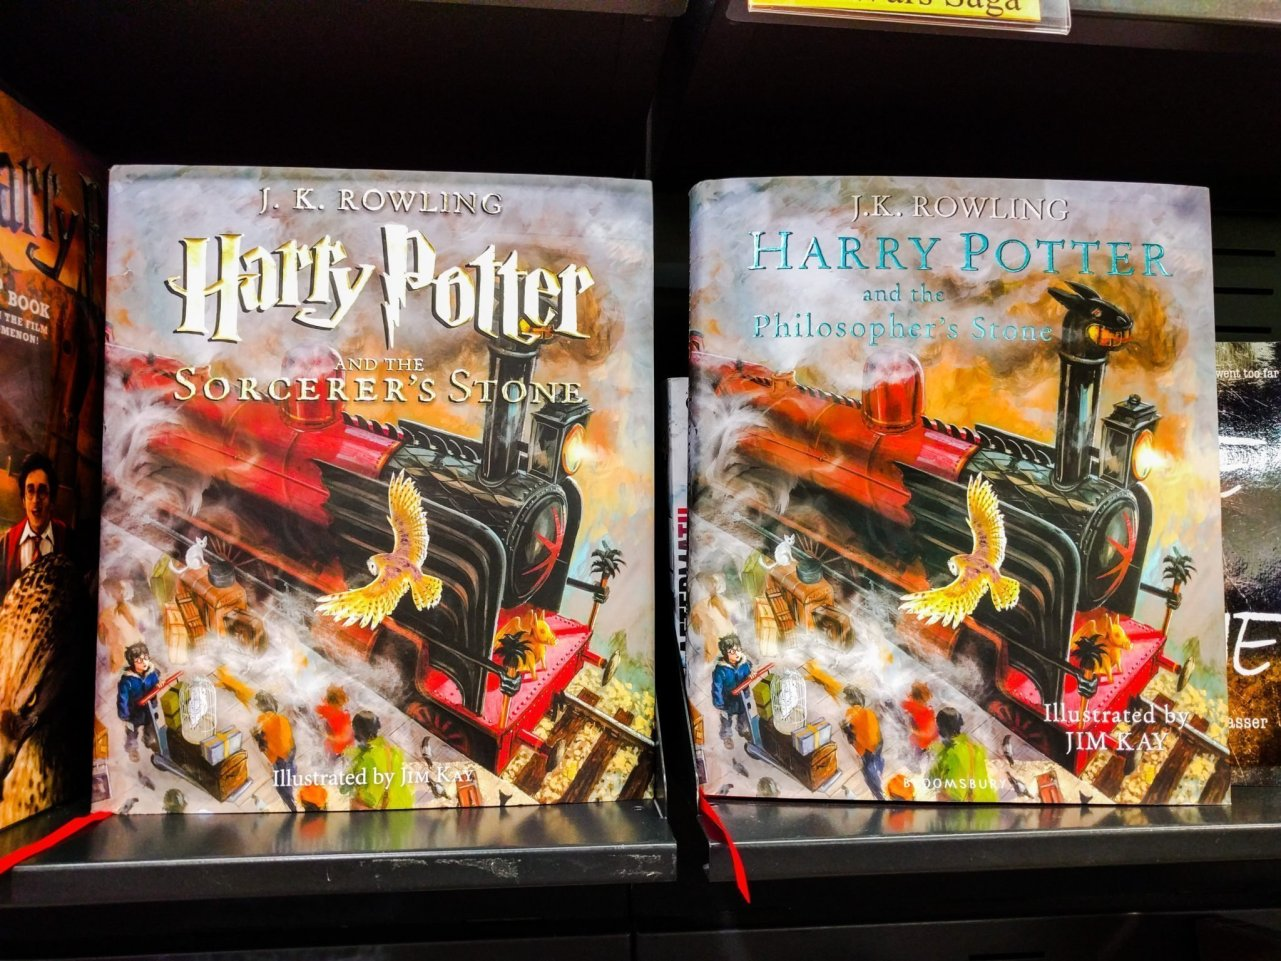 Harry Potter and the Philosopher's/Sorcerer's Stone